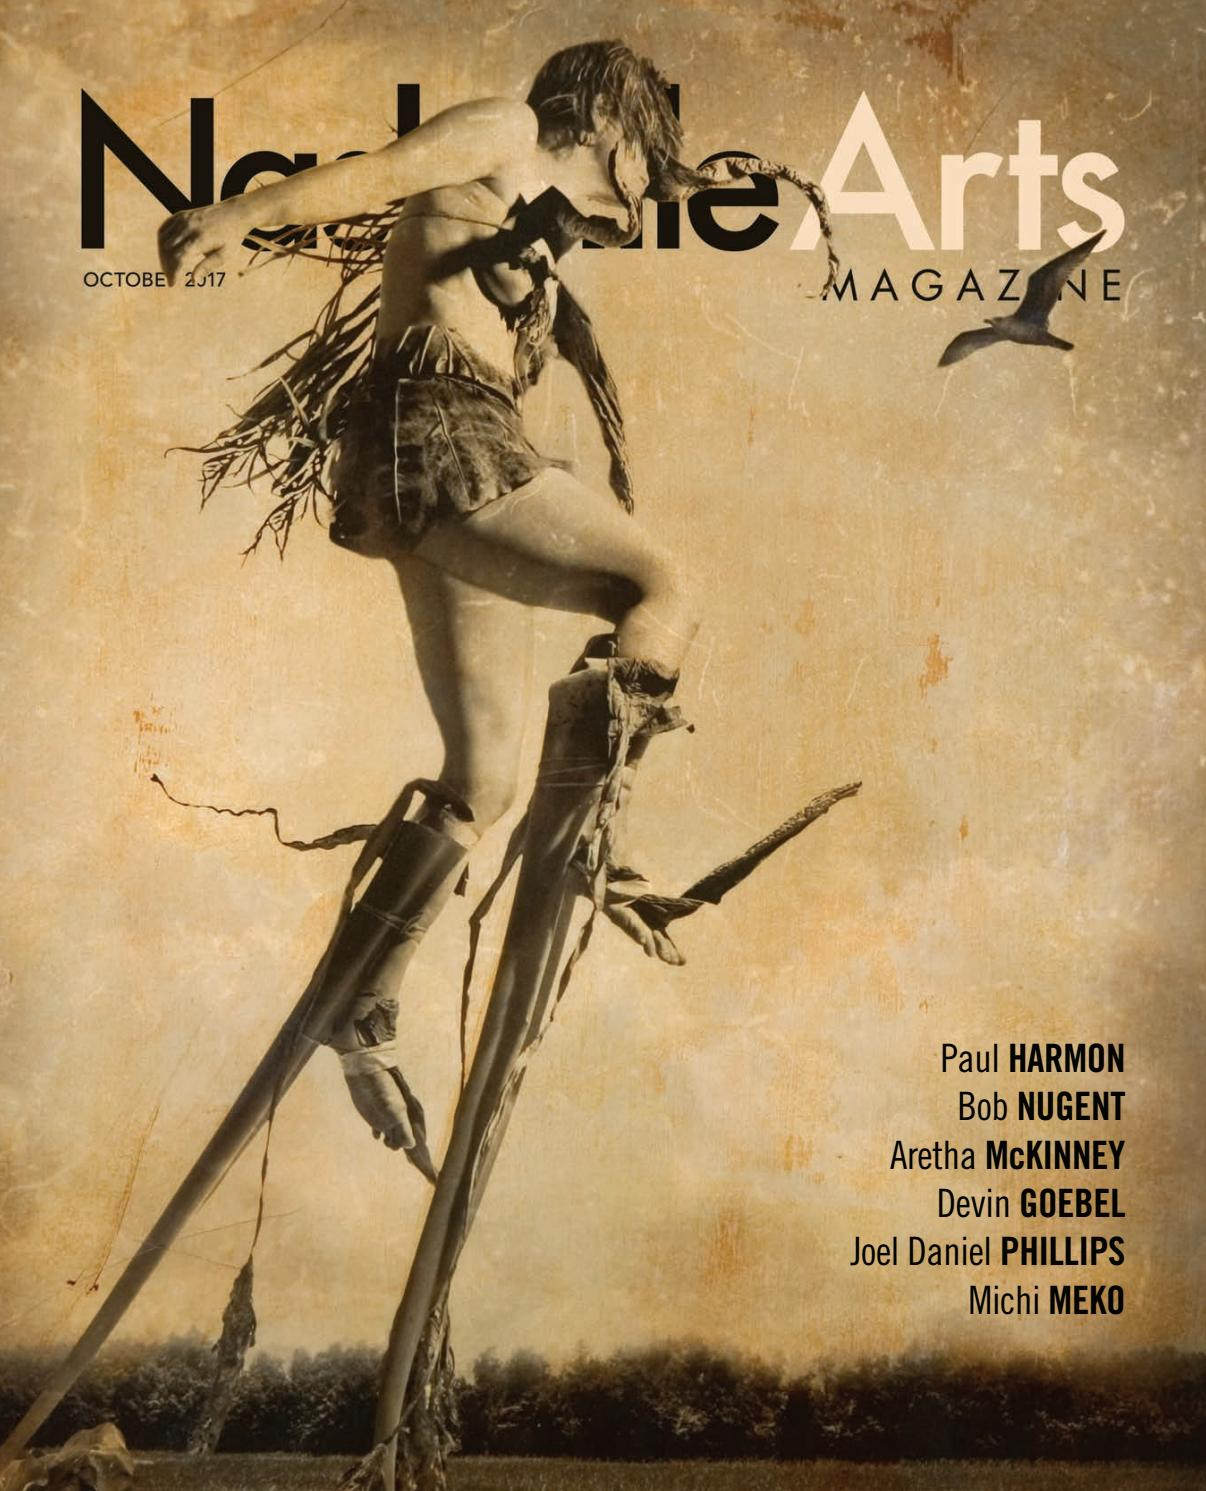 54b903ee8eb2 Nashville Arts Magazine - October 2017 by Nashville Arts Magazine - issuu